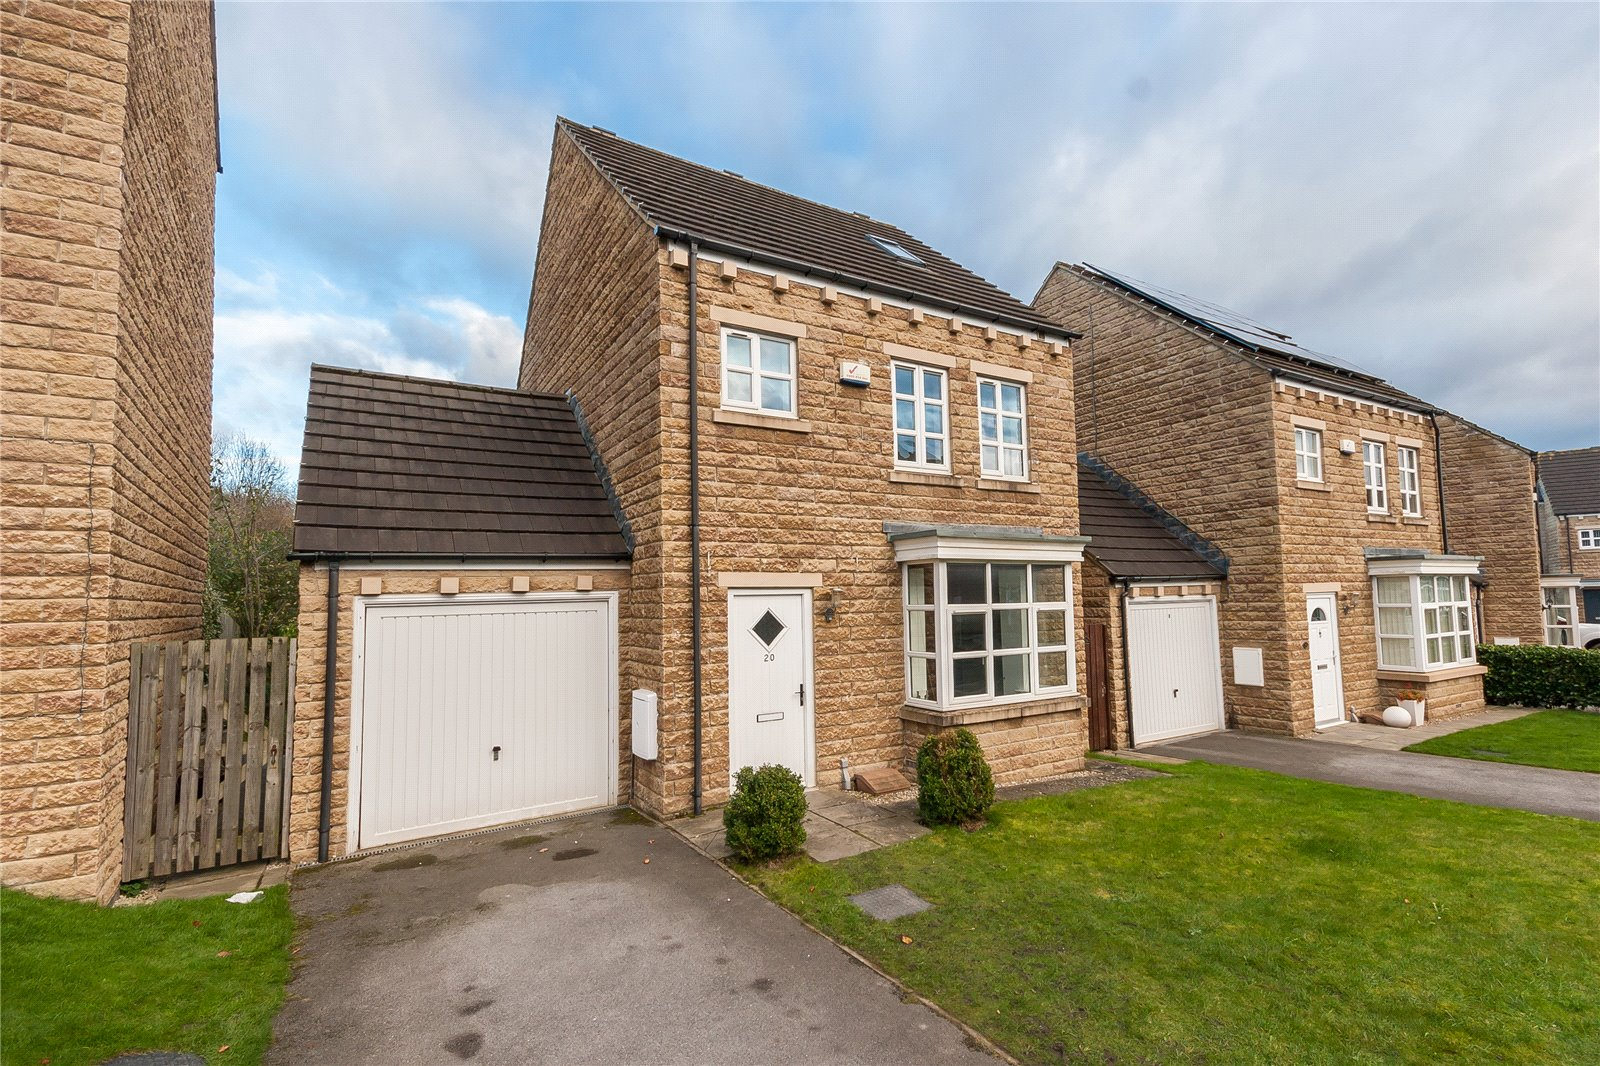 4 Bedrooms Detached House for sale in Suffolk Rise, Huddersfield, HD2